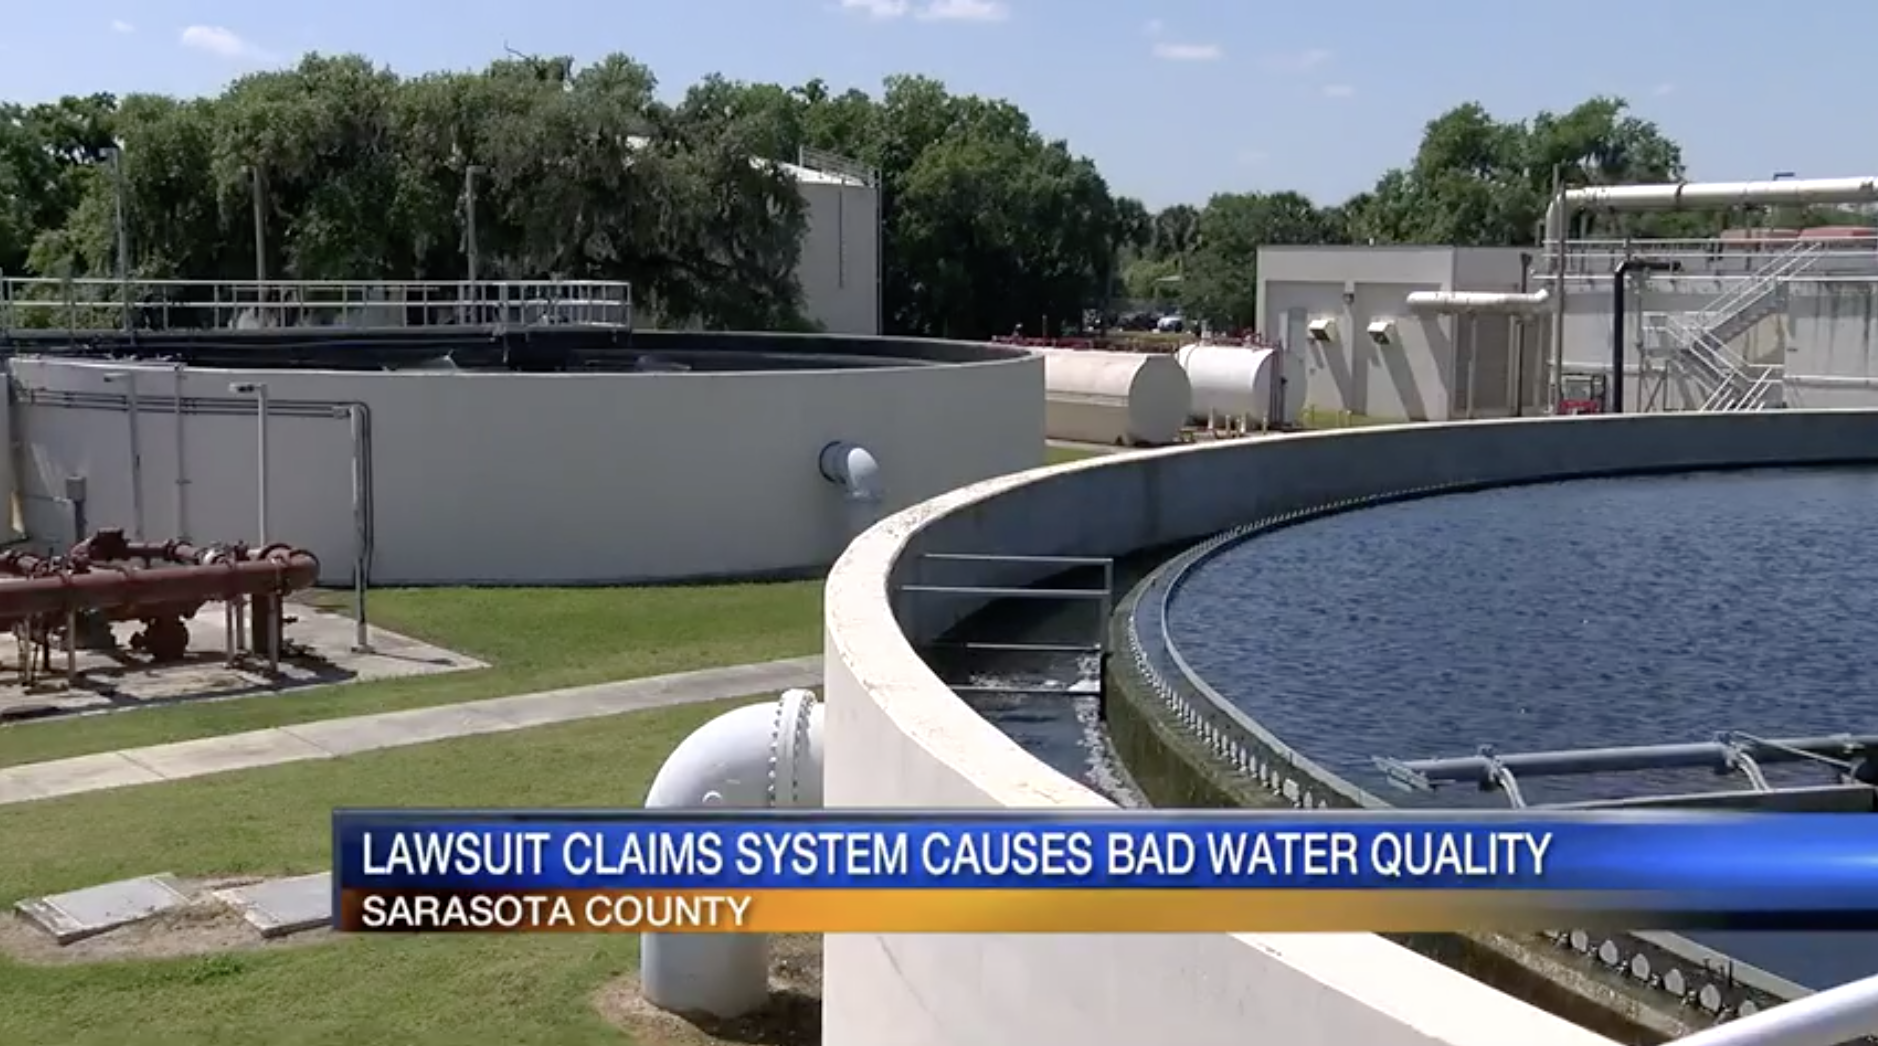 """April 2019:   Sarasota County Facing Lawsuit After Environmental Groups Claim Faulty Systems Are Polluting Suncoast Waterways   SunCoast Waterkeeper, Our Children's Earth Foundation and Ecological Rights Foundation filed a suit Monday in the U.S. District Court in Tampa. The groups claim a faulty storm sewer system is polluting our waters and violating the Clean Water Act of Florida.  With the amazing beach weather we've been having lately, it's easy to forget how bad conditions were just a few months ago. These groups say although they know the county did not cause the red tide, they claim there's proof that they didn't help get rid of it. Now, people are actively trying to figure out why it lingered here for so long.  […]  Environmental groups now saying one of the significant pollutants is coming from the county's sewer system – specifically from their Bee Ridge Facility – where millions of gallons of wastewater were dumped into the gulf.  """"We realize that it's a complex system and that there's a lot of causes for water pollution, but it's the basic job of county and local government to protect humans from raw sewage and protect the environment from discharges into our creeks and our water systems that end up in the bay,"""" Environmental Lawyer, Justin Bloom, who is the founder of Suncoast Water Keepers, explained.  In the lawsuit, the groups claim that over the course of many years, Sarasota County has failed to maintain its sewage system. It says the infrastructure is aging and gets inundated very quickly, so not only is raw sewage spilling, but storm water as well, has been dumping into our waterways - way more often than it should.   Read more here."""